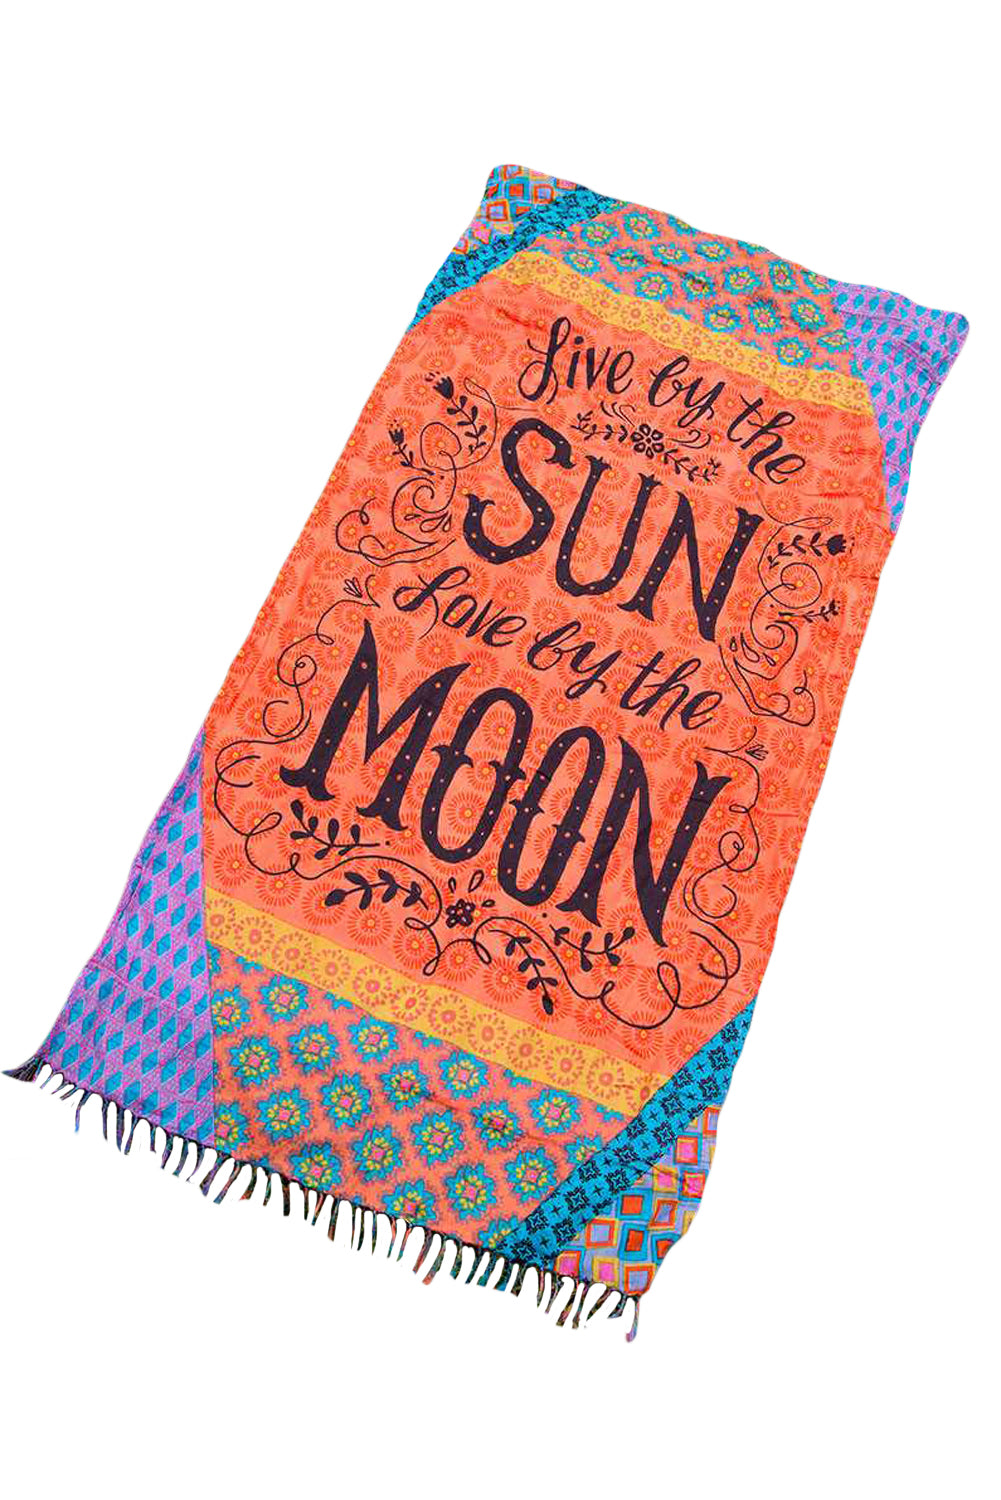 Sexy Enjoy Sun And Moon Beach Towel Blanket Sexy Affordable Clothing